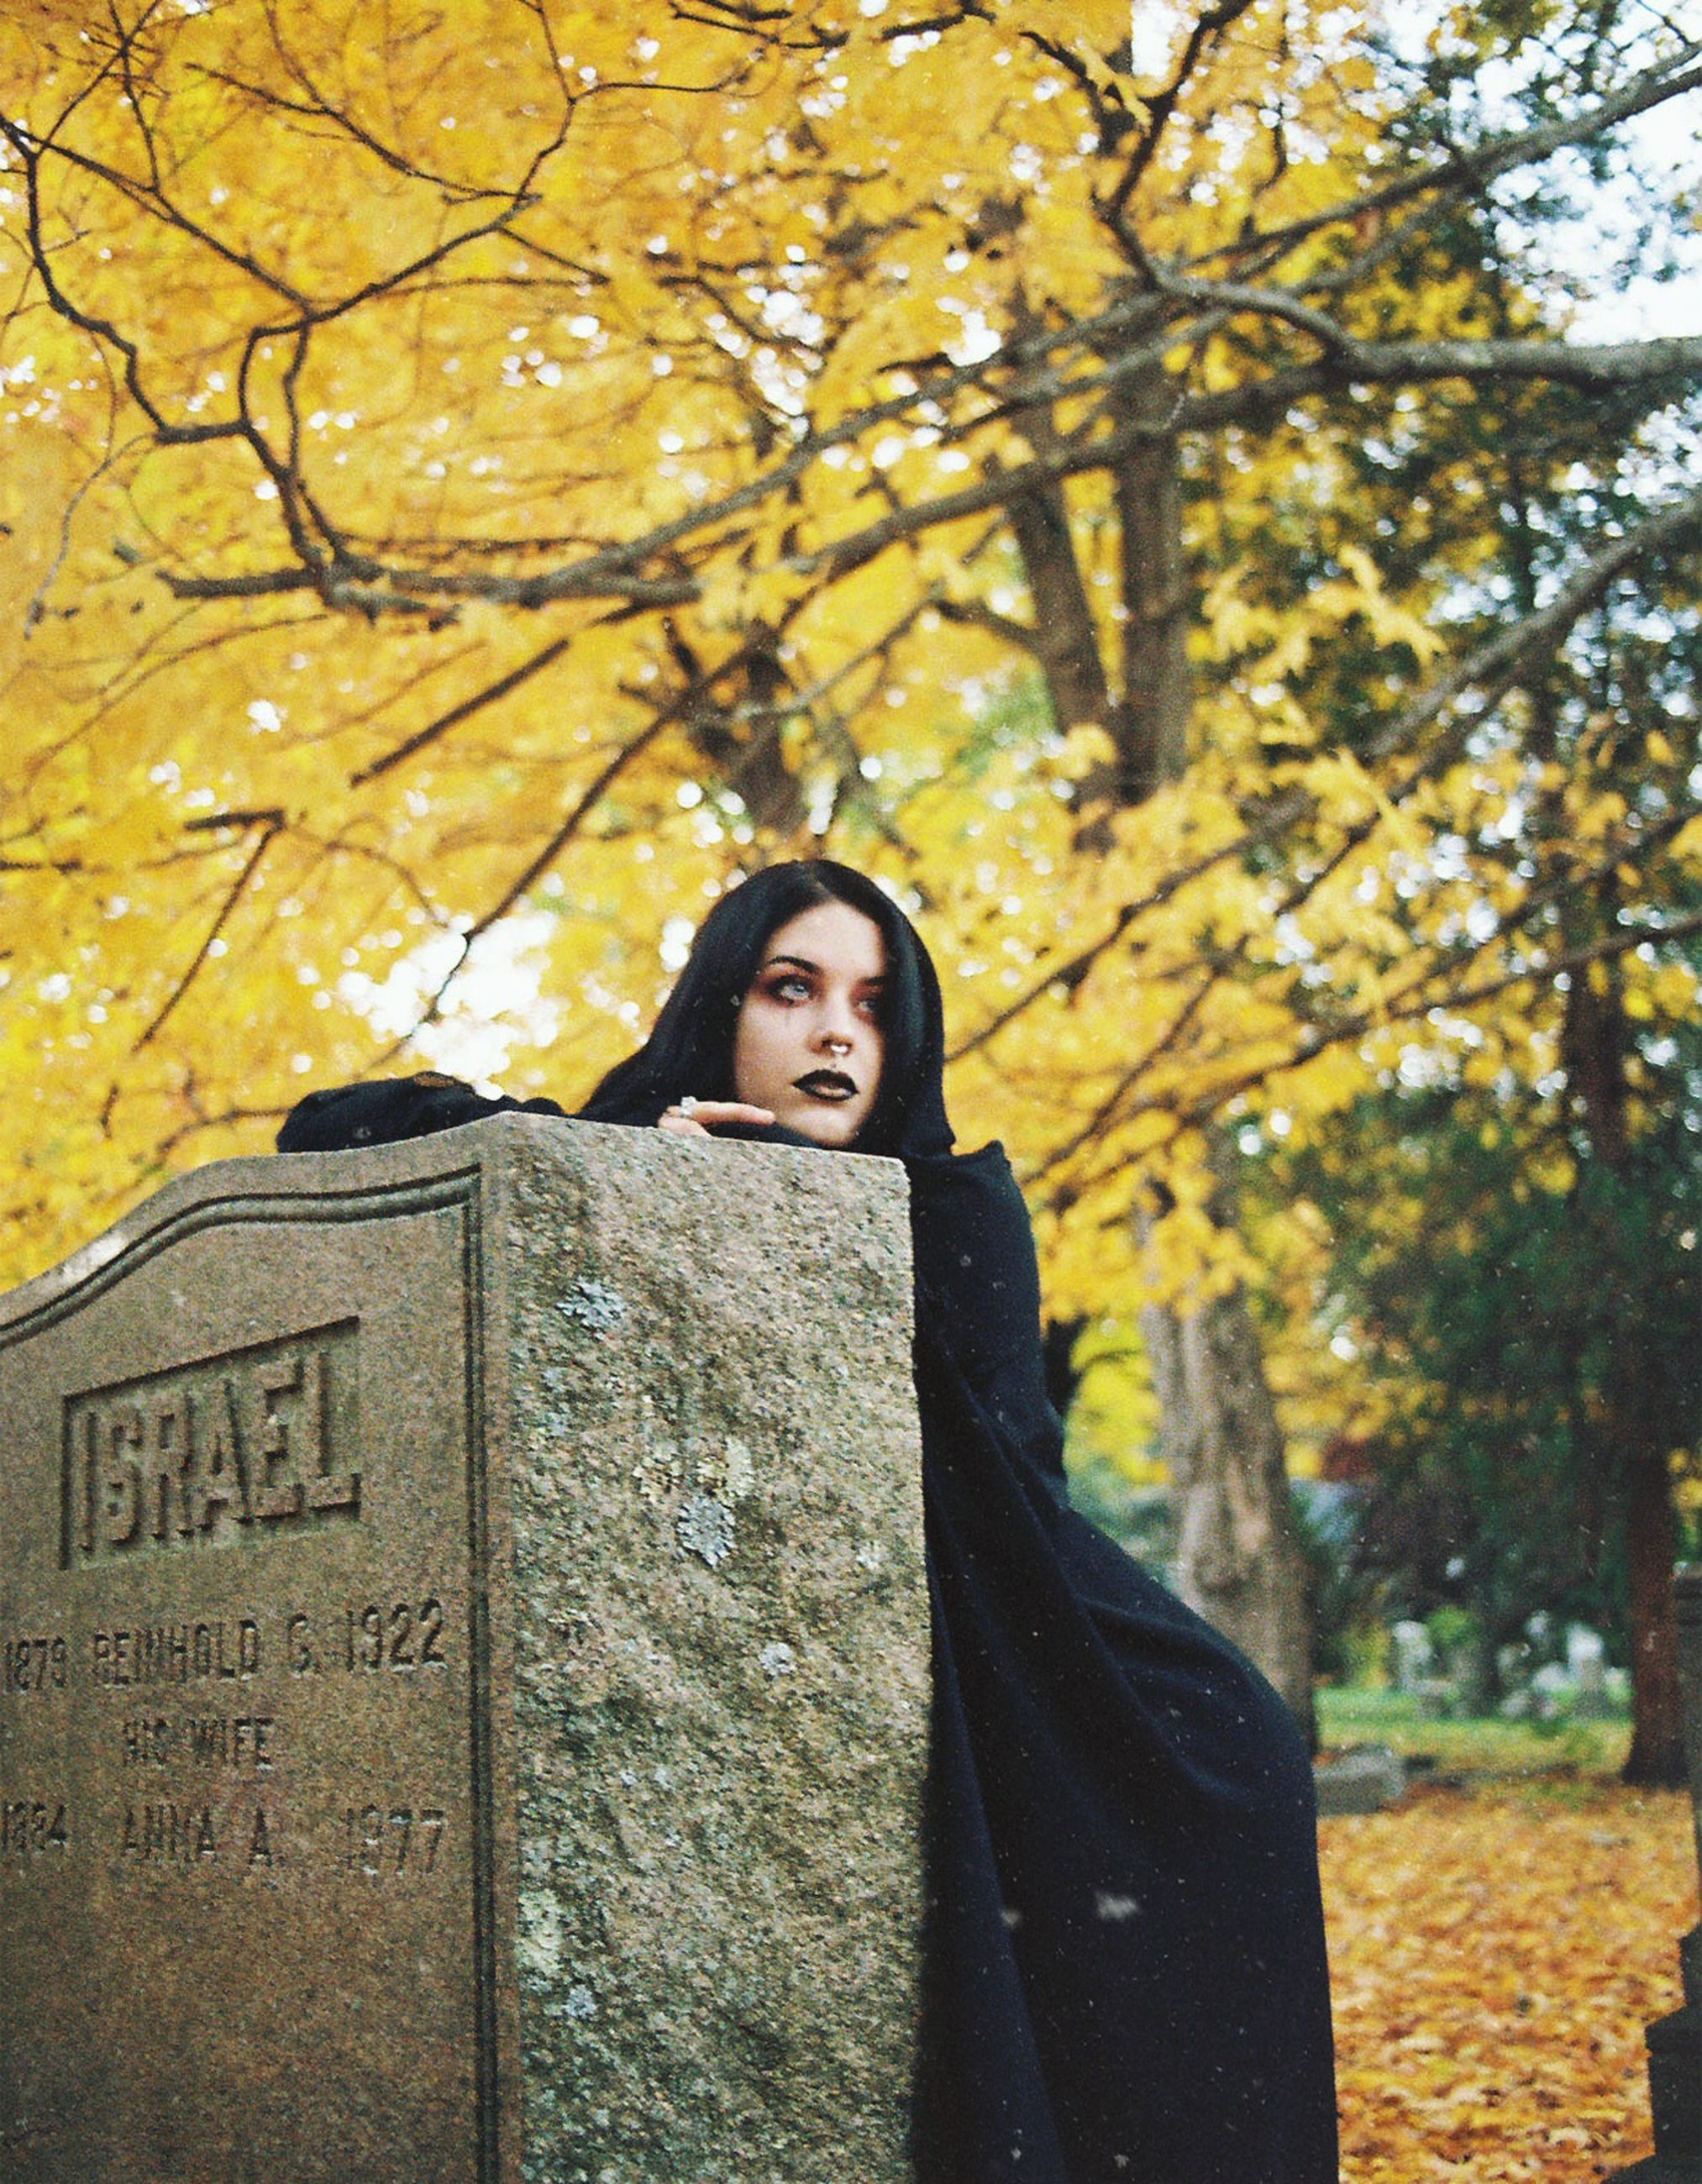 tree, autumn, cemetery, grave, one person, tombstone, plant, nature, change, day, real people, young adult, portrait, standing, emotion, stone, lifestyles, outdoors